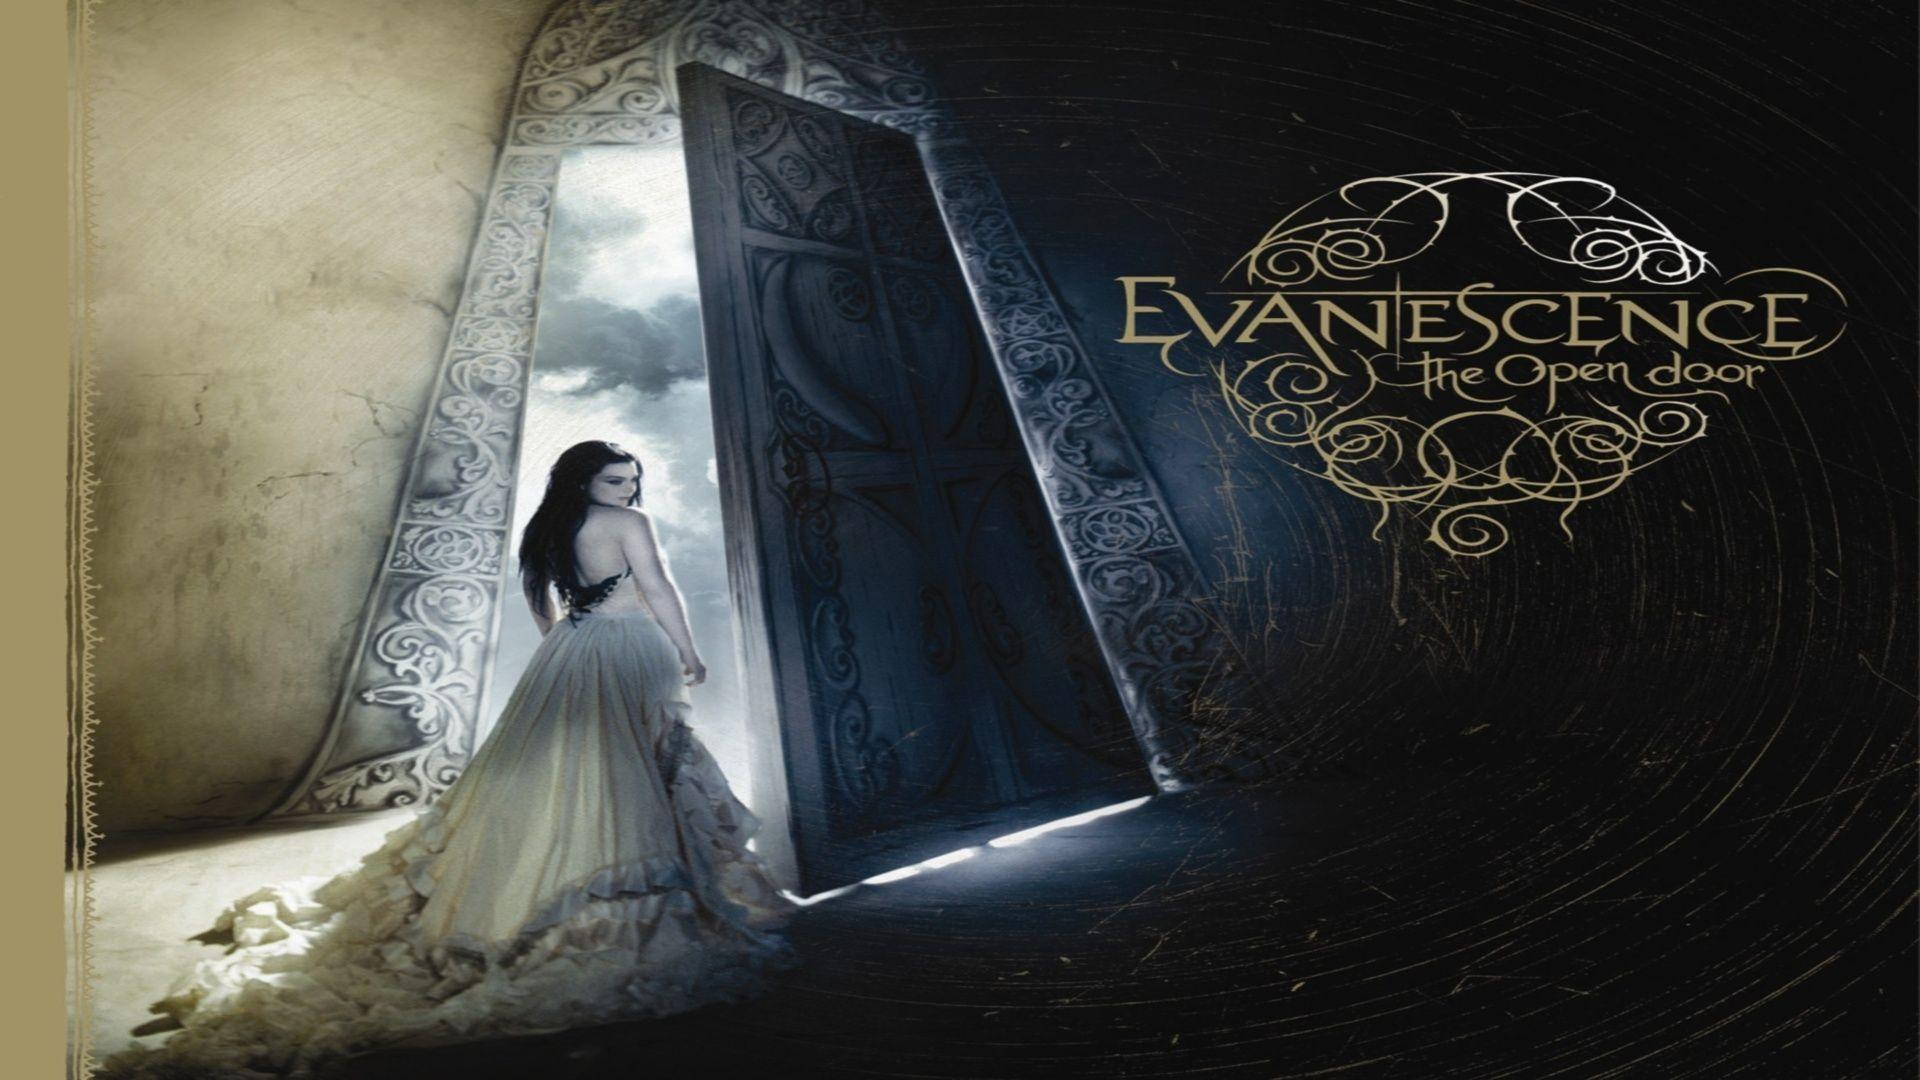 Evanescence 2017 Wallpapers 1920x1080